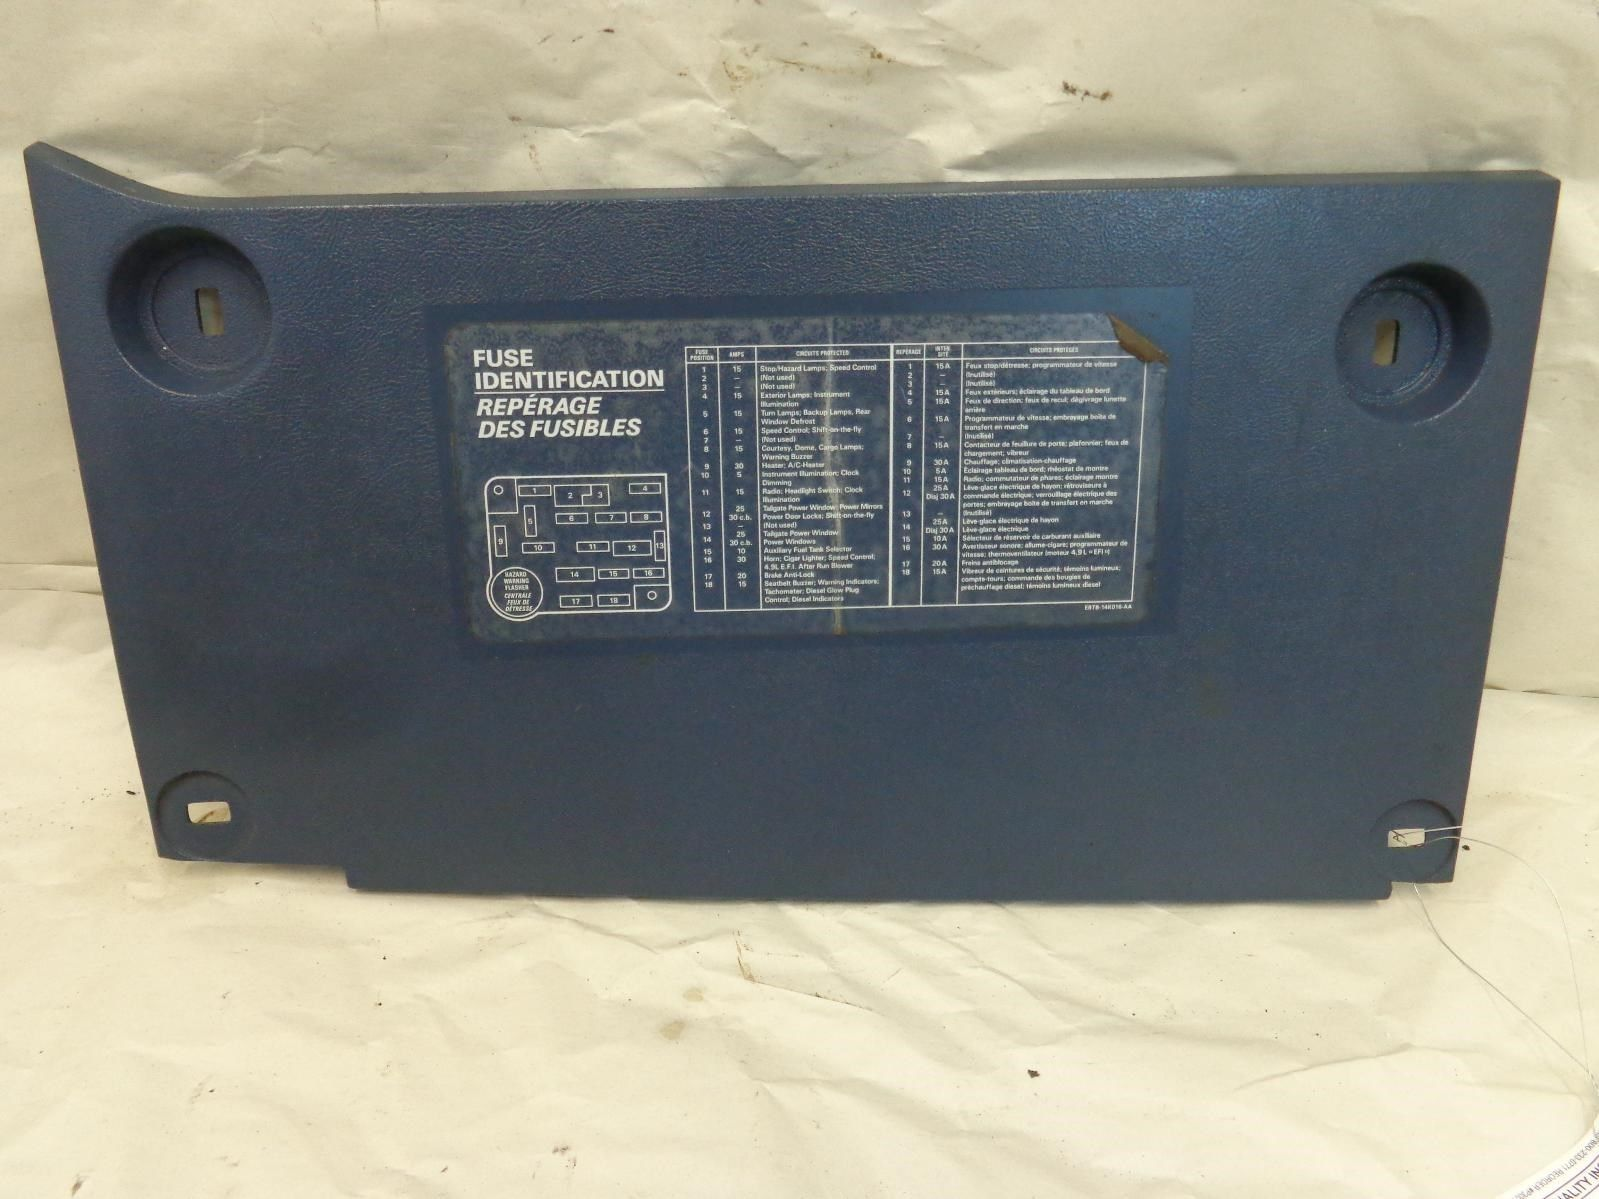 Ford F150 Dash Fuse Panel Cover Blue FOTZ1504459A 87 88 89 90 91 F250 Bronco  Does Not Apply 9194